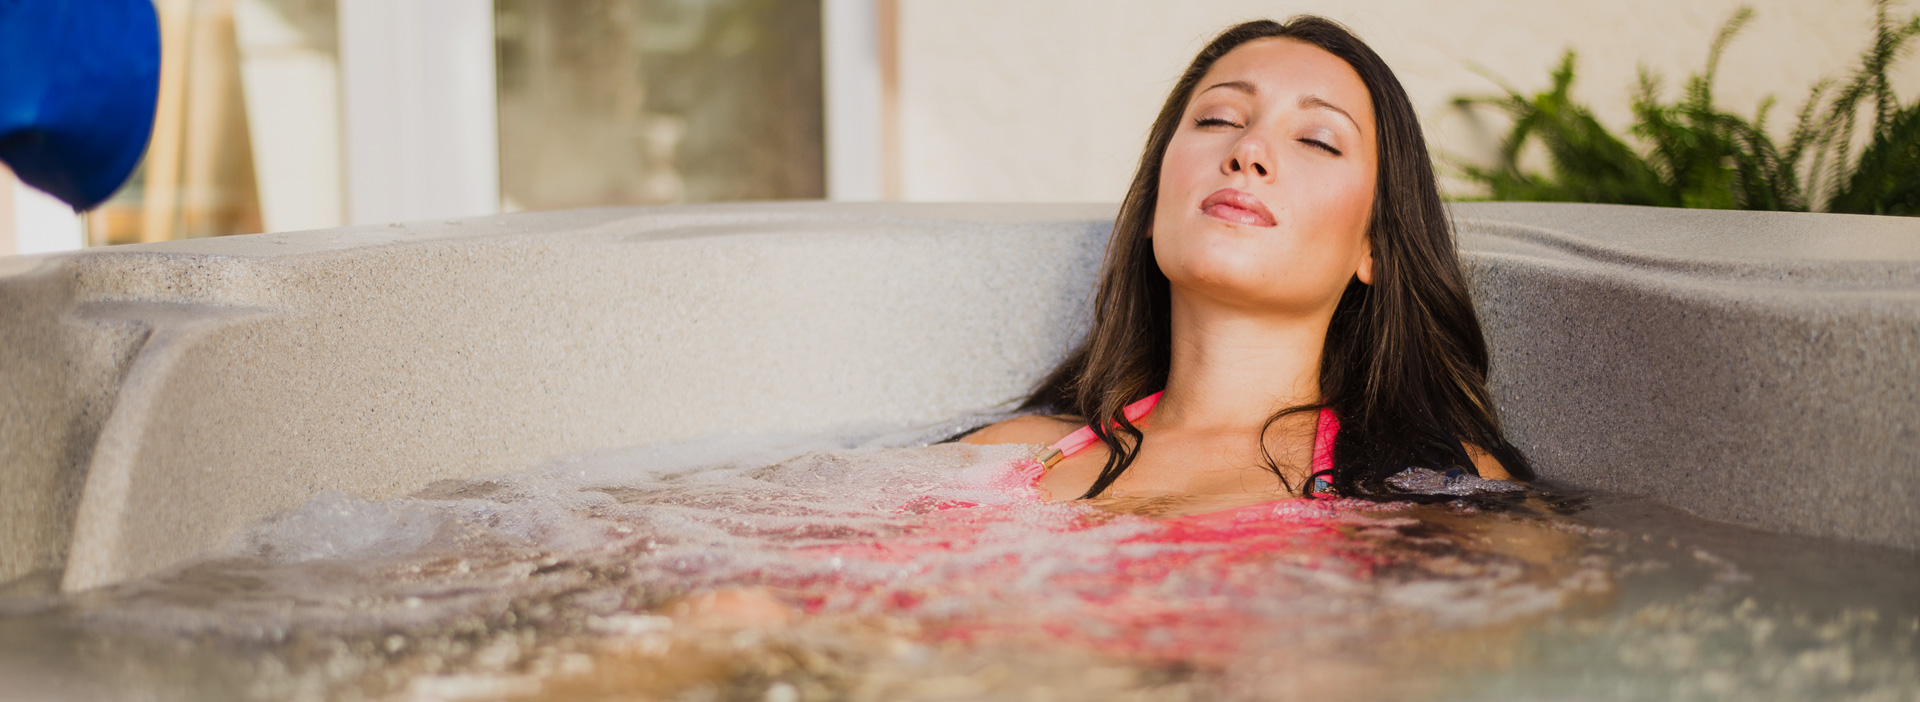 Woman Lying Back in Fantasy Spa